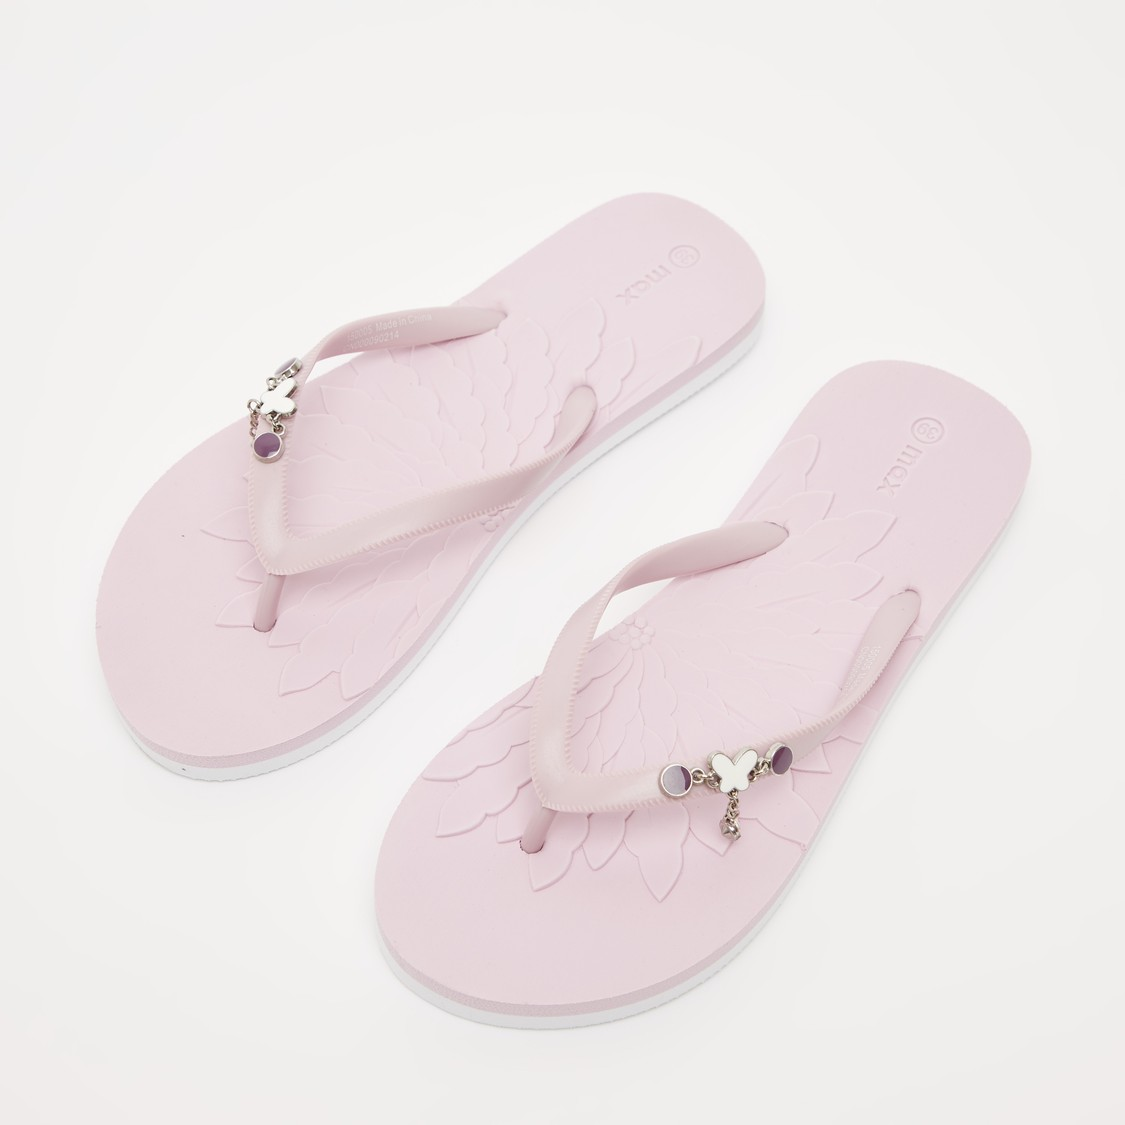 Textured Flip Flops with Butterfly Applique Detail